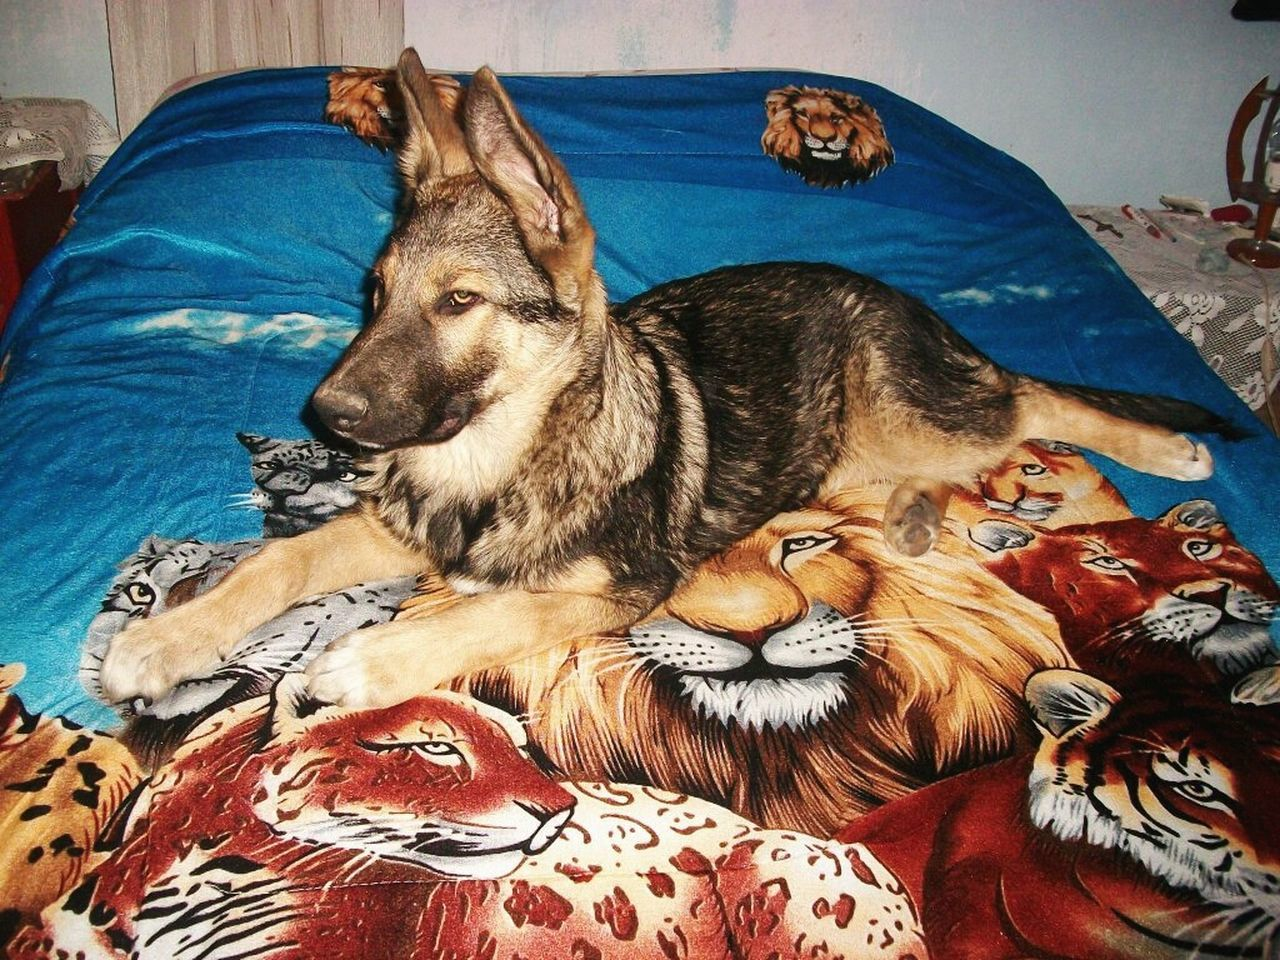 domestic animals, pets, animal themes, bed, indoors, dog, mammal, lying down, relaxation, no people, close-up, bedroom, day